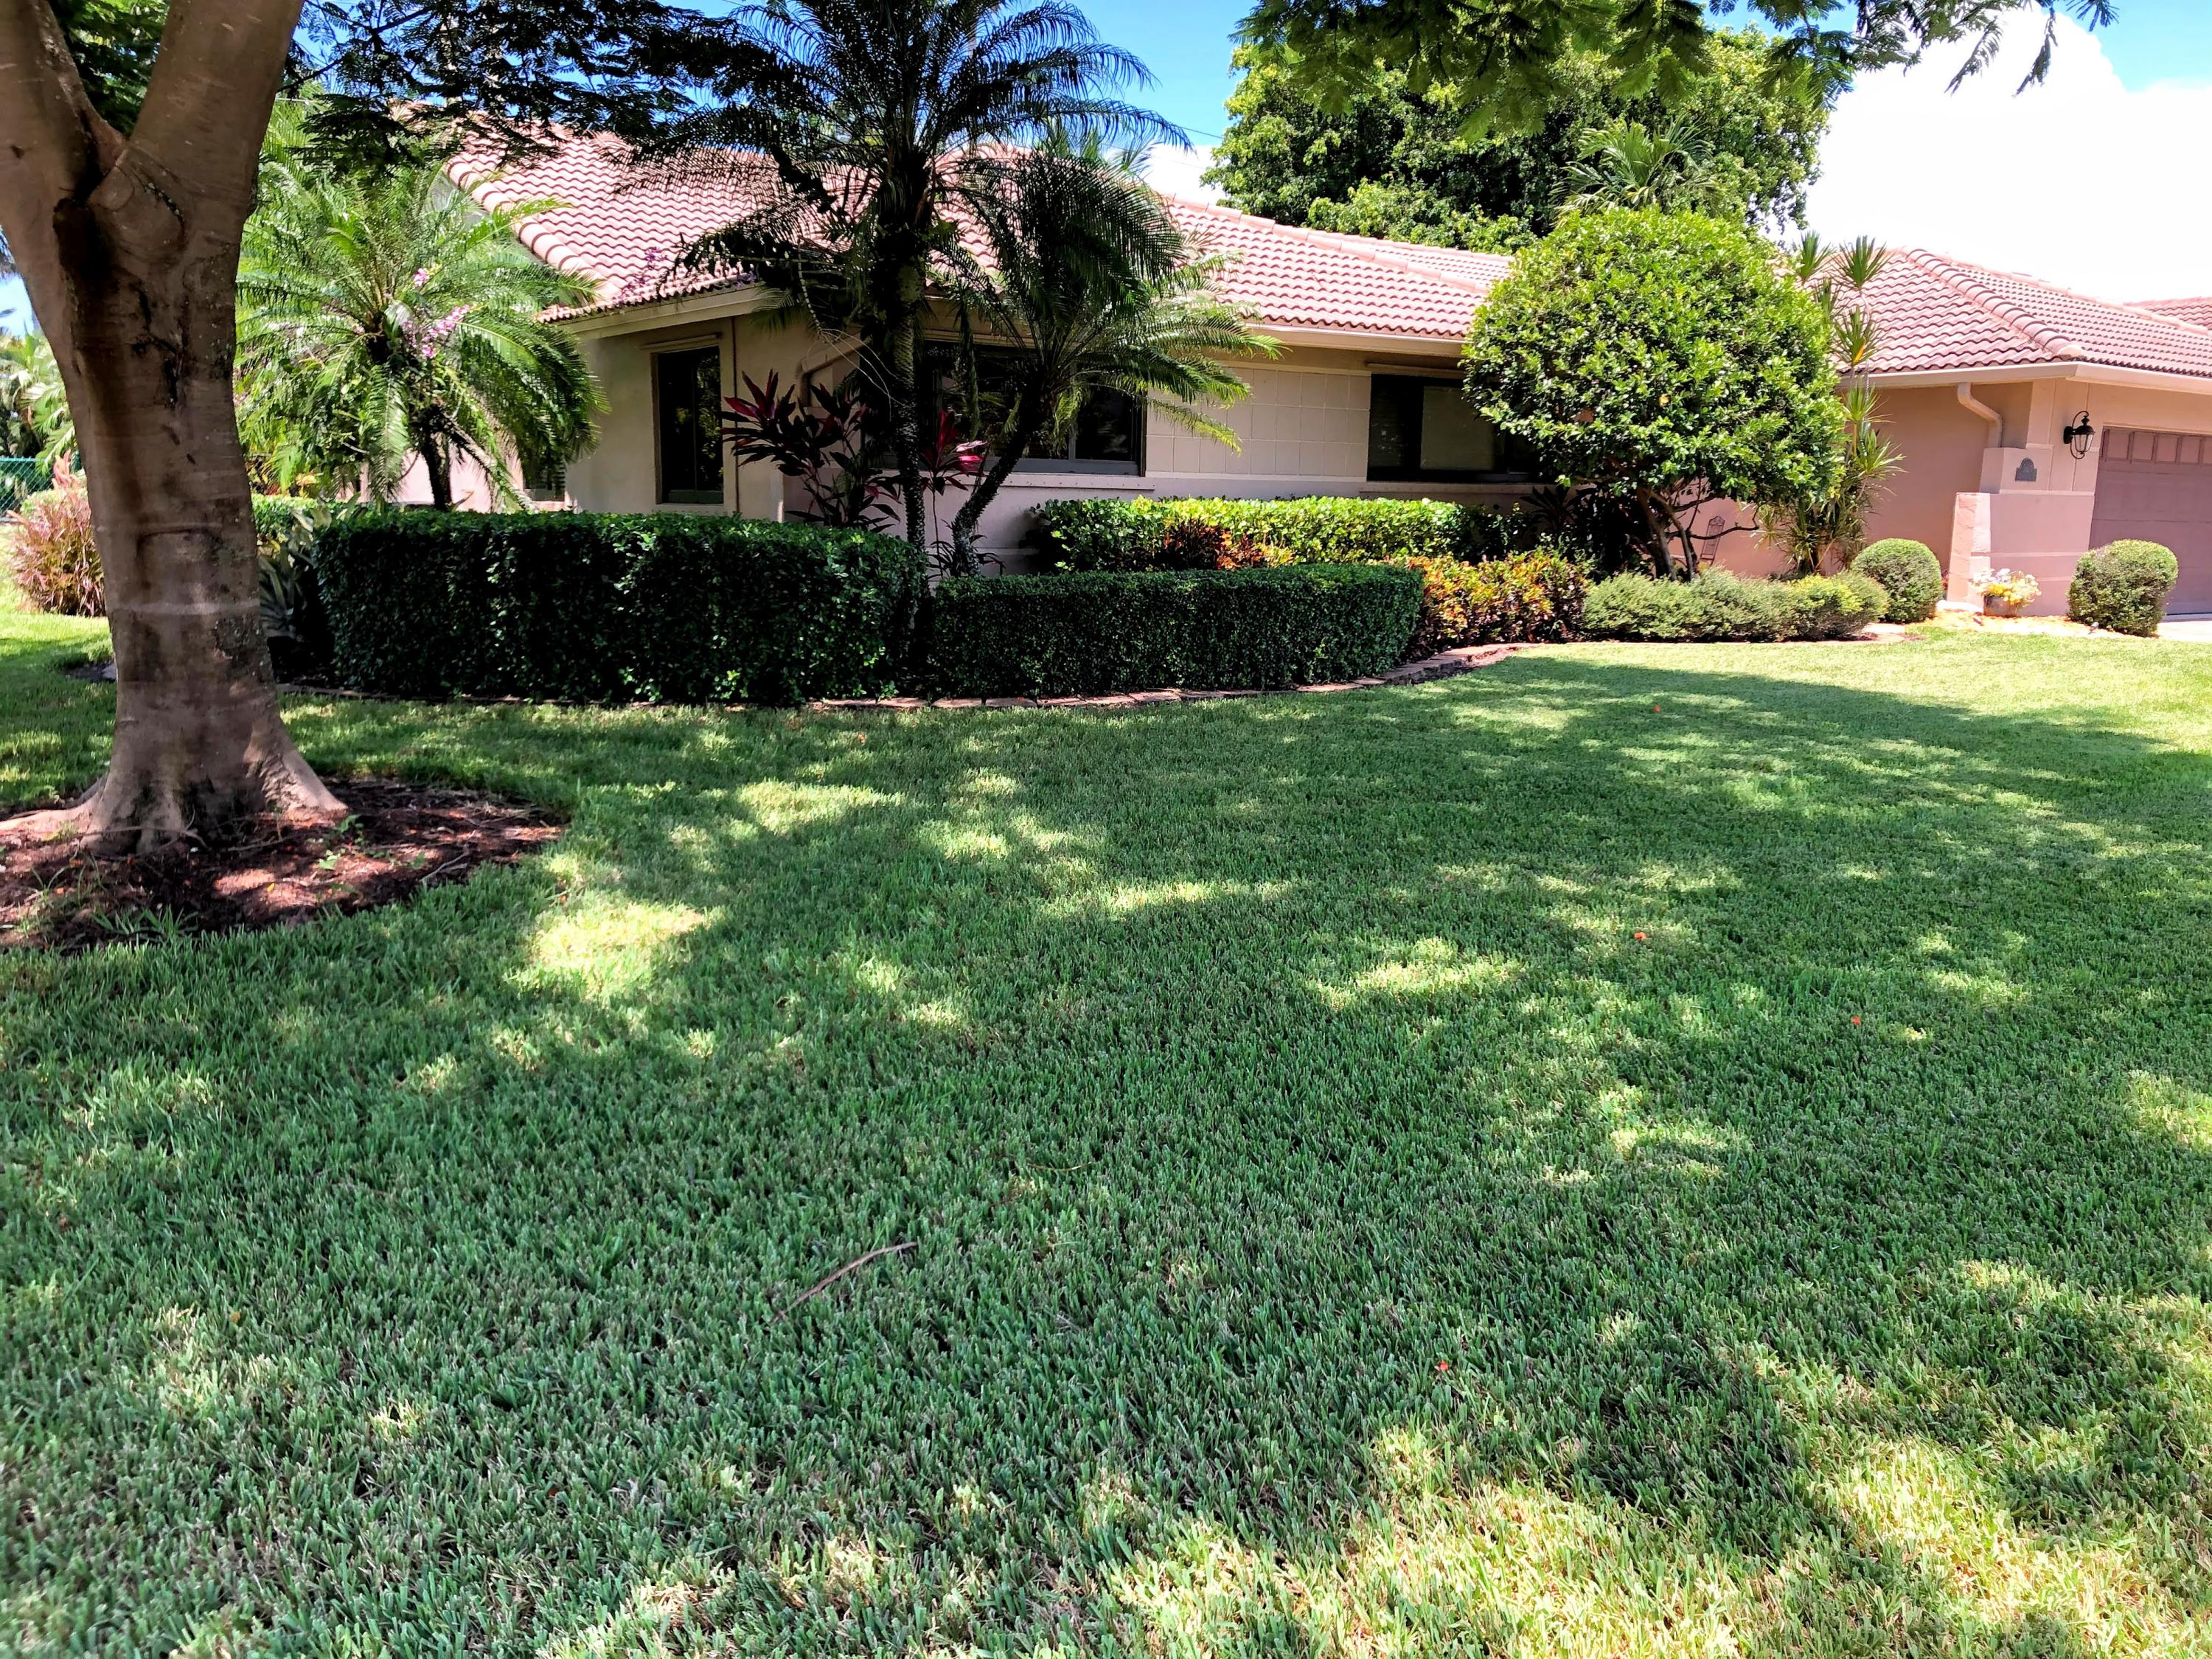 5821 Surrey Circle E - 33331 - FL - Davie